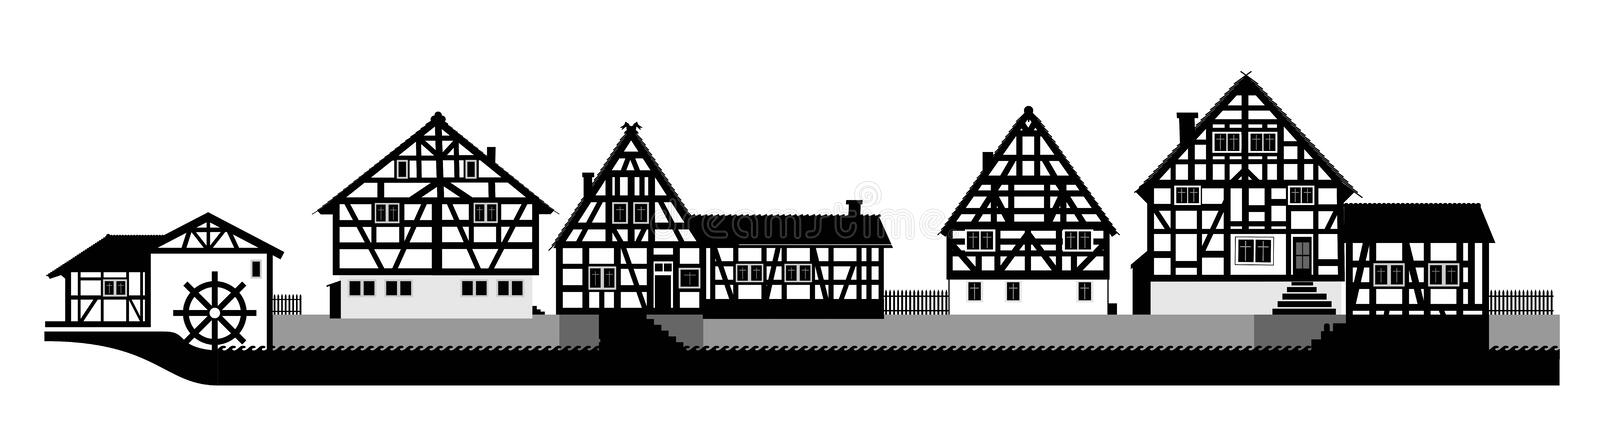 Timbered house royalty free illustration